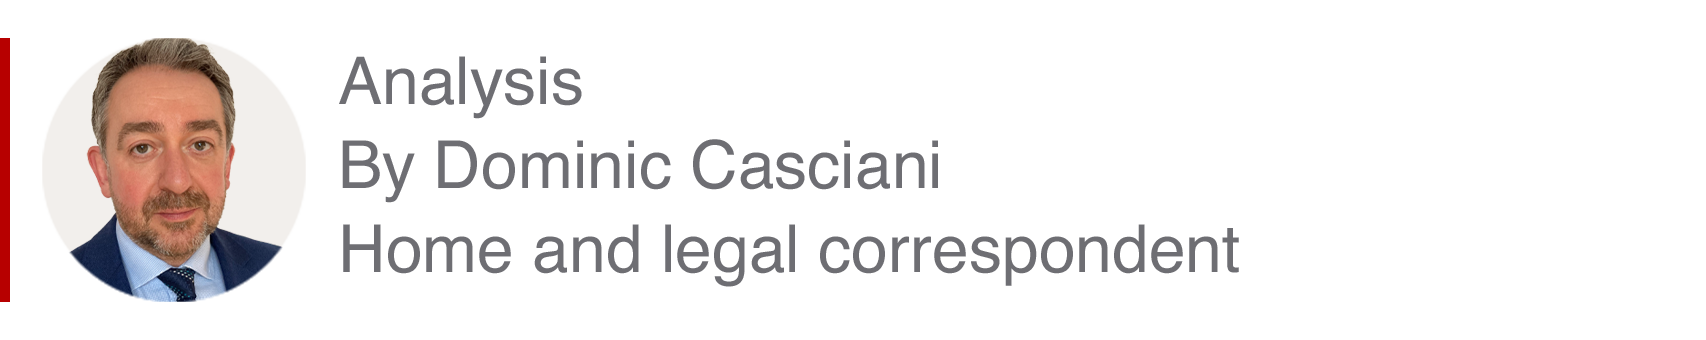 Analysis box by Dominic Casciani, home and legal correspondent